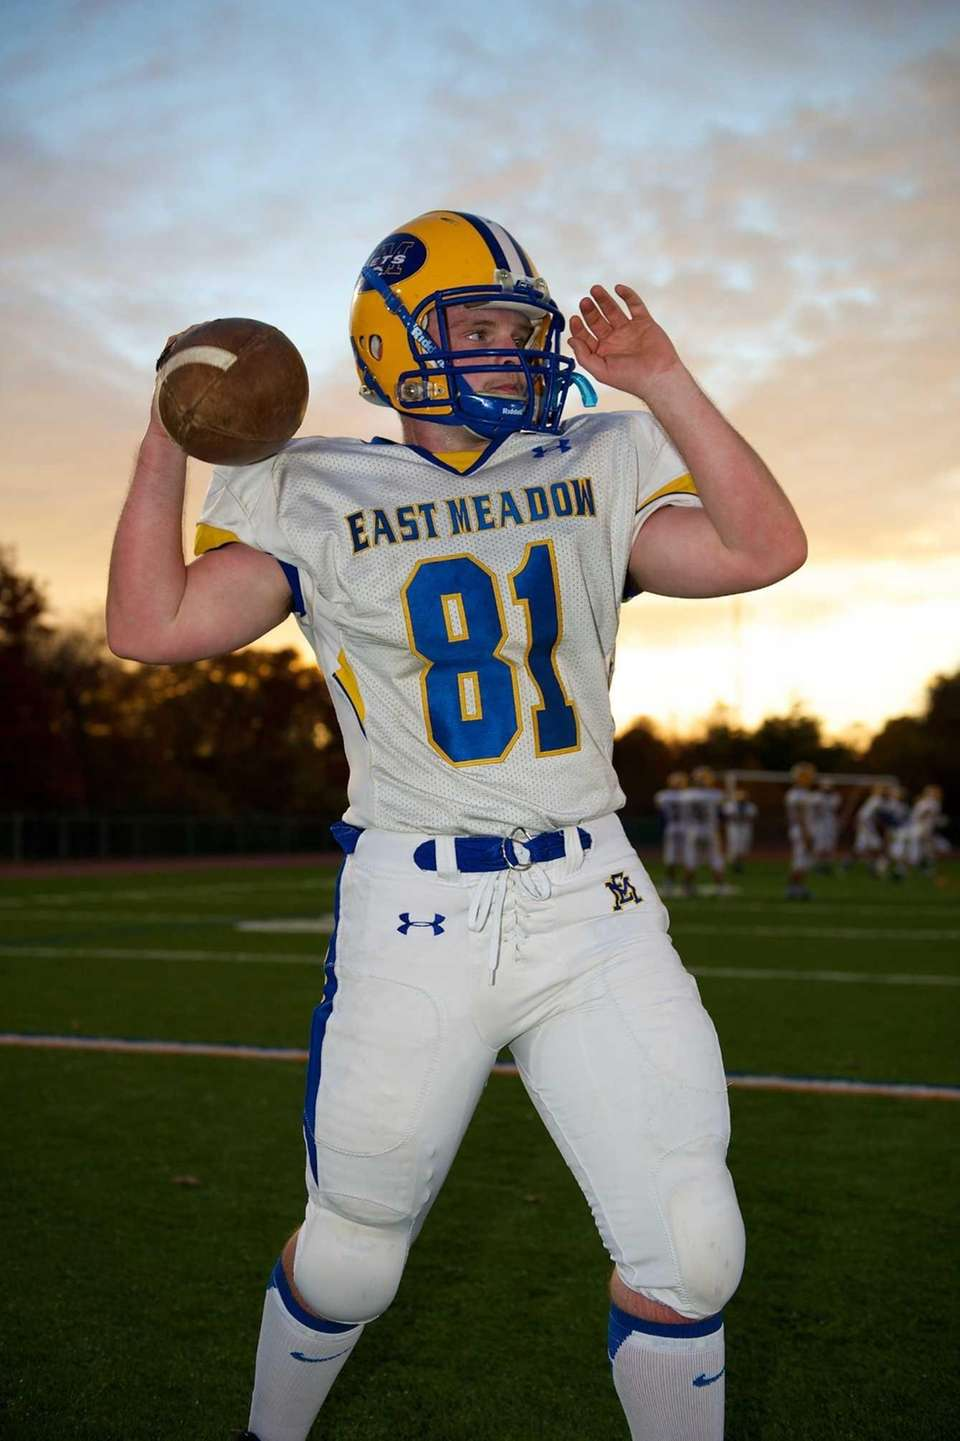 East Meadow running back Chris Lodati warms up